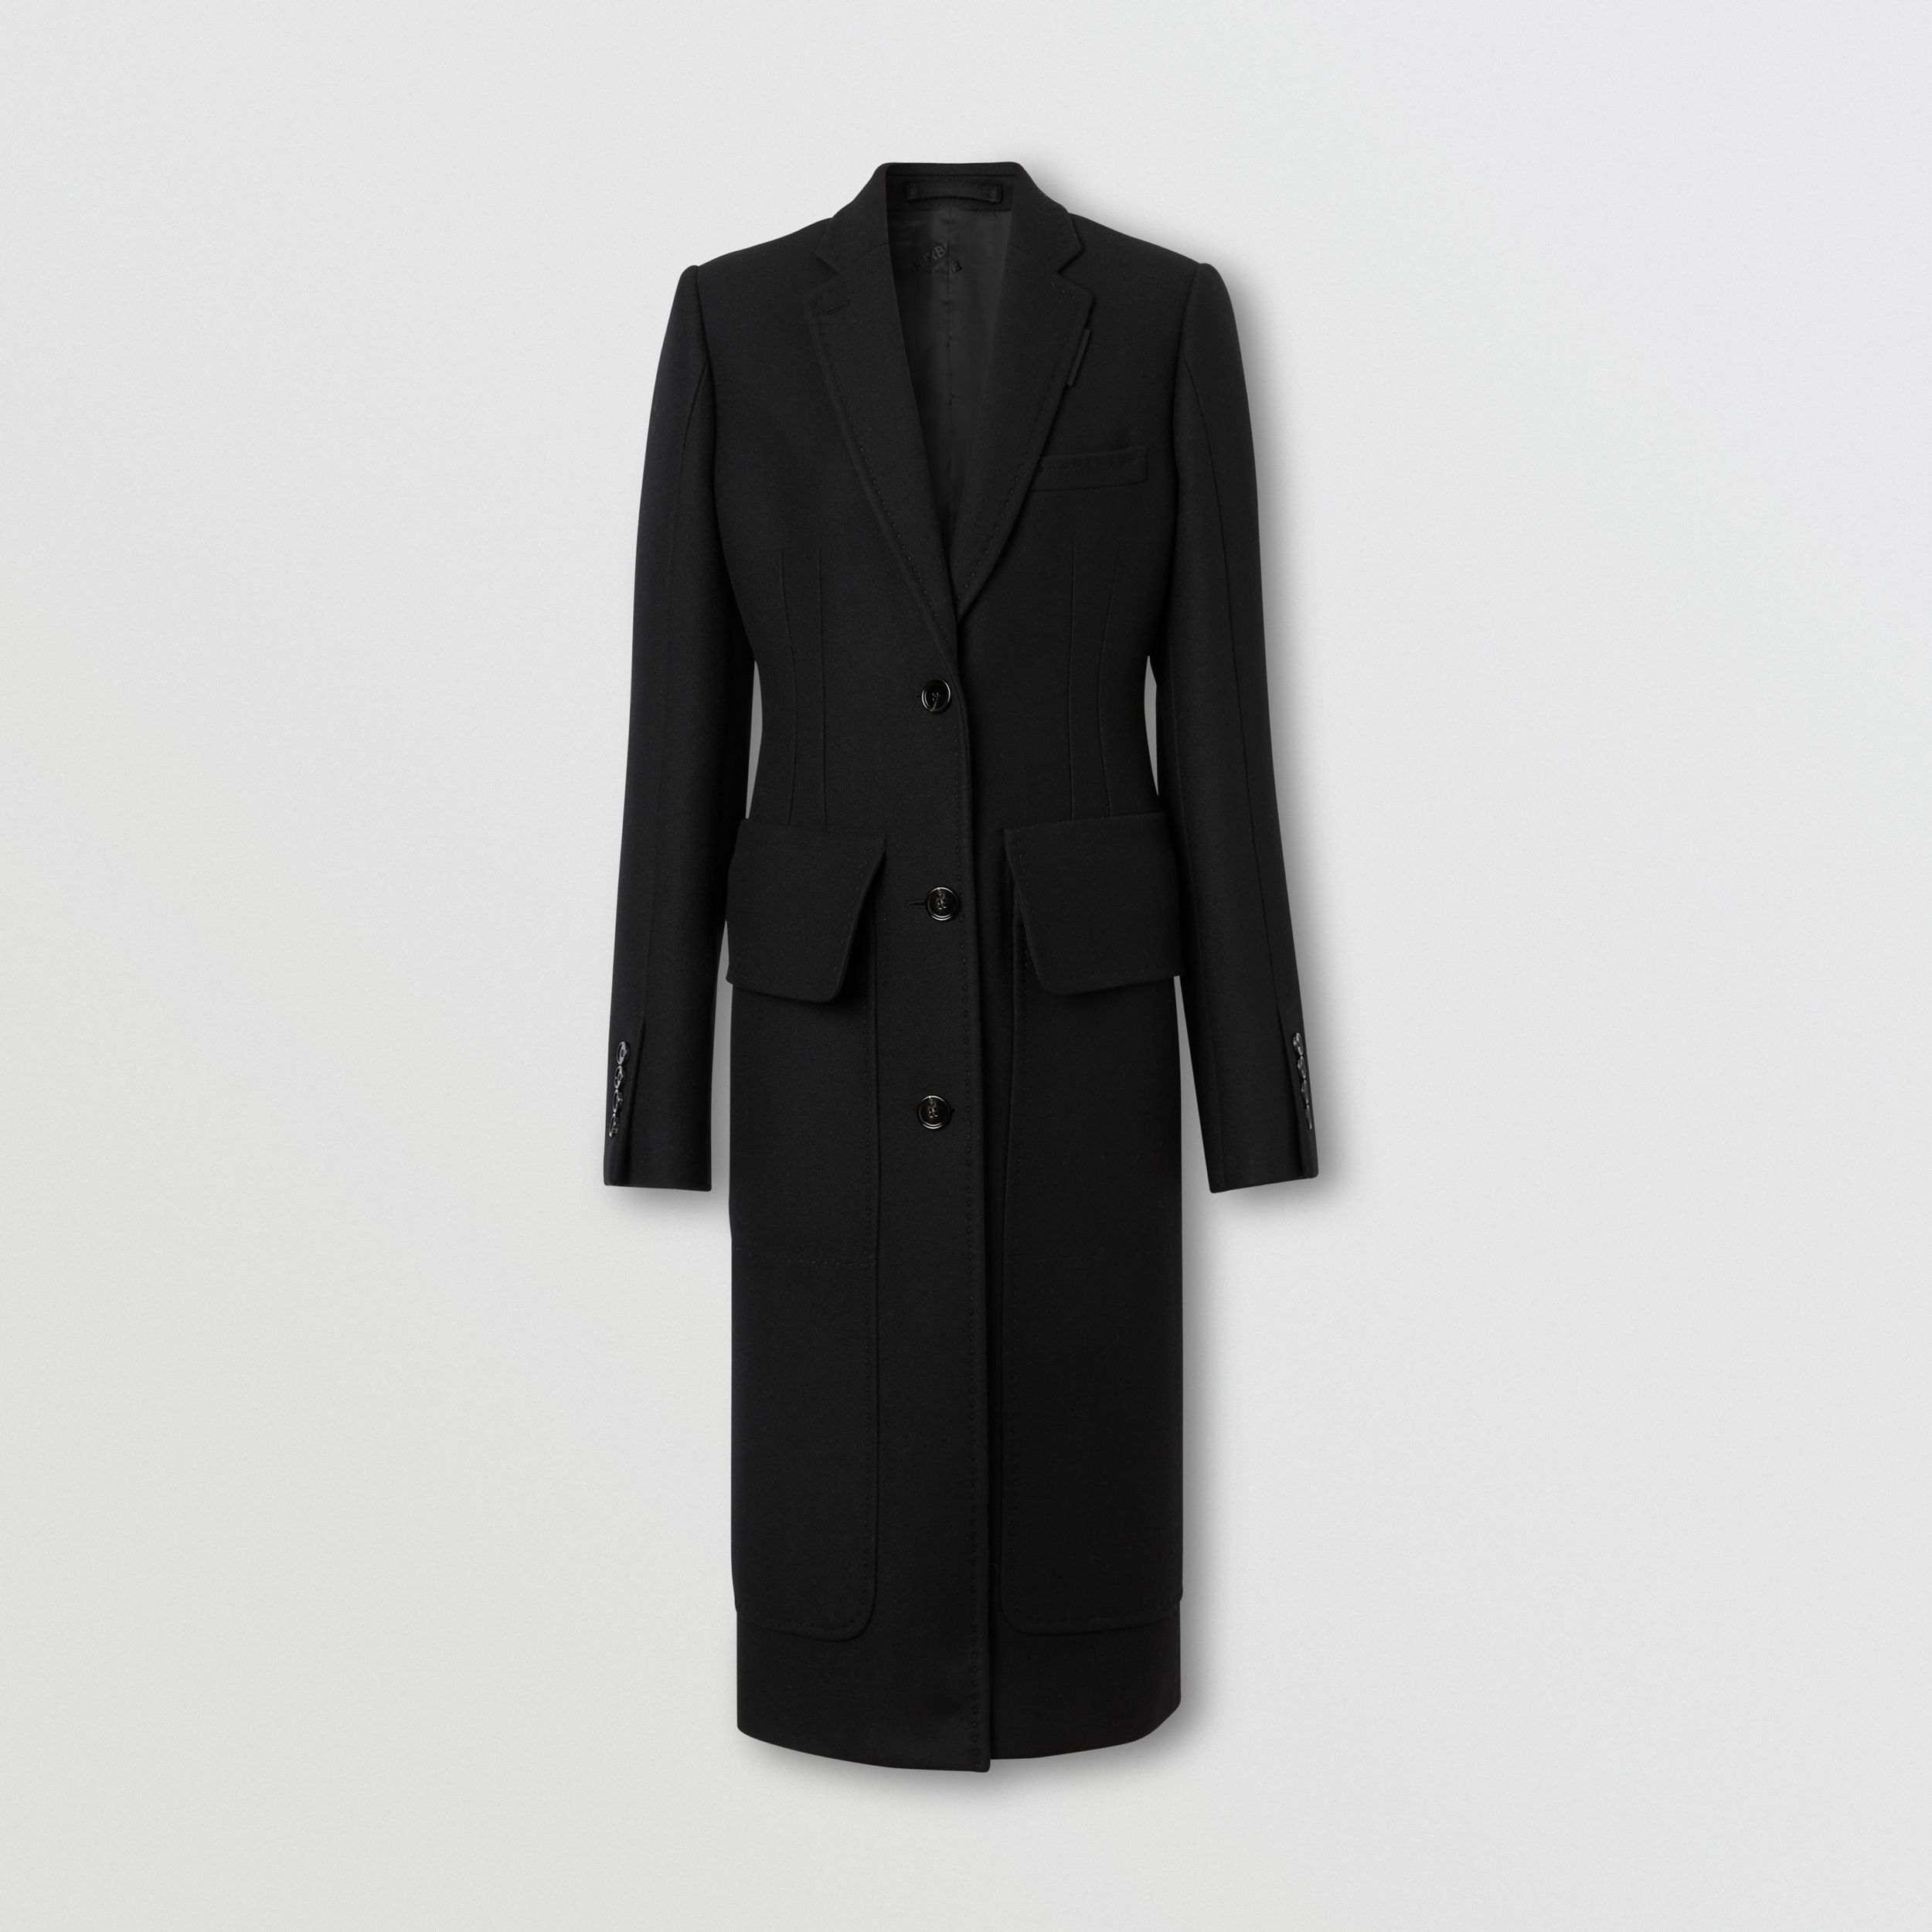 Camel Hair Wool Tailored Coat in Black - Women | Burberry - 4